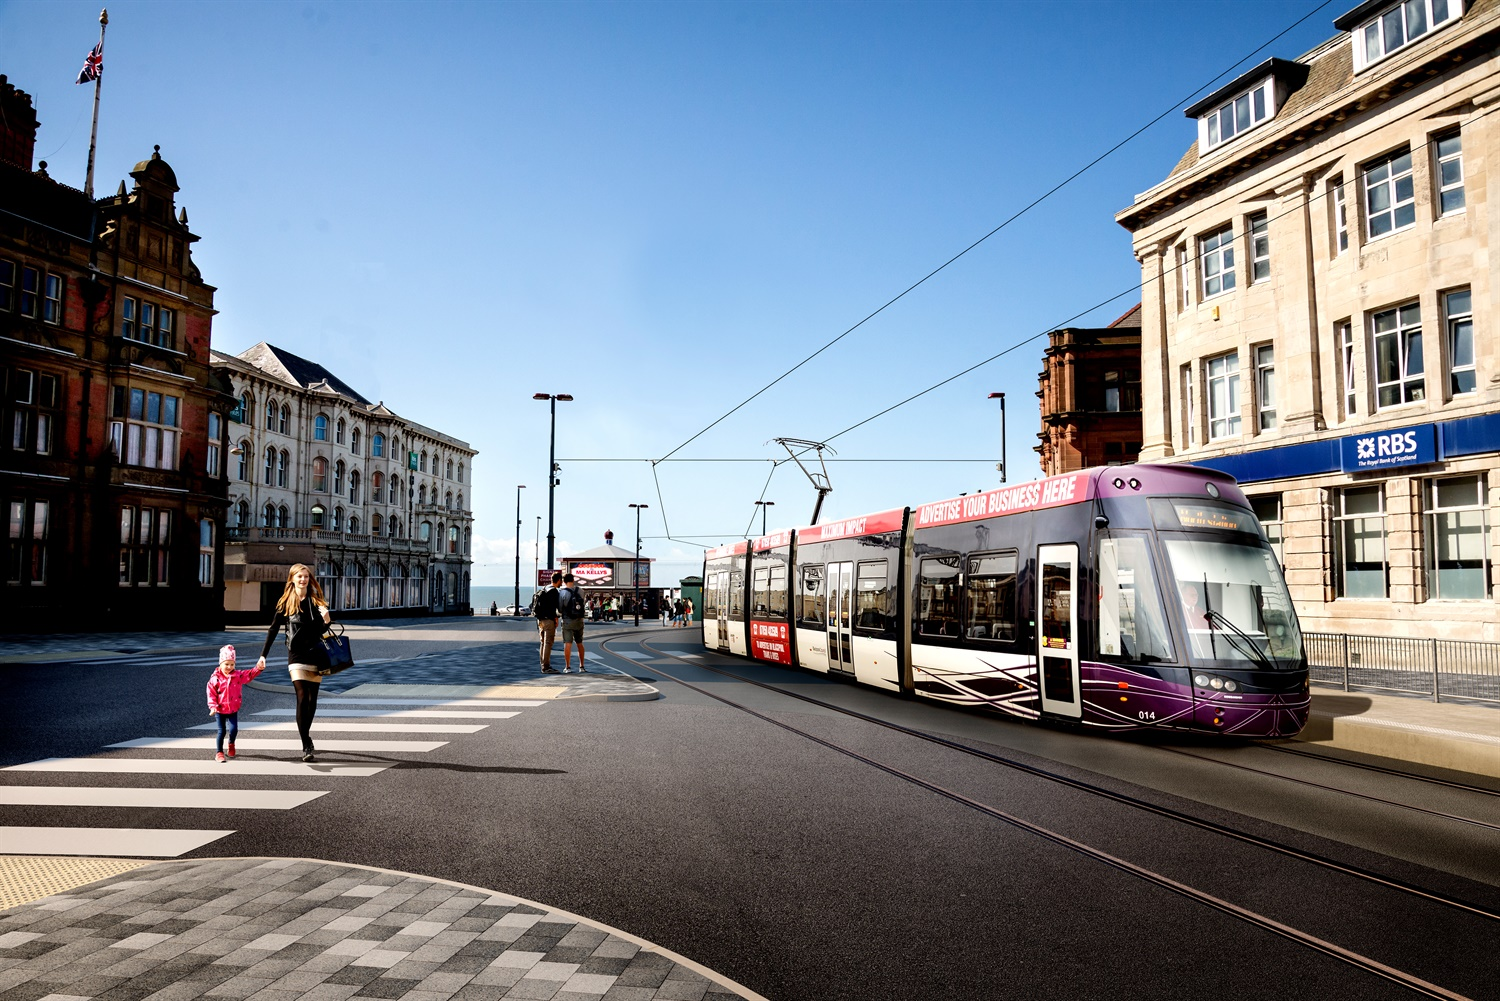 Blackpool Tramway extension: What's in store